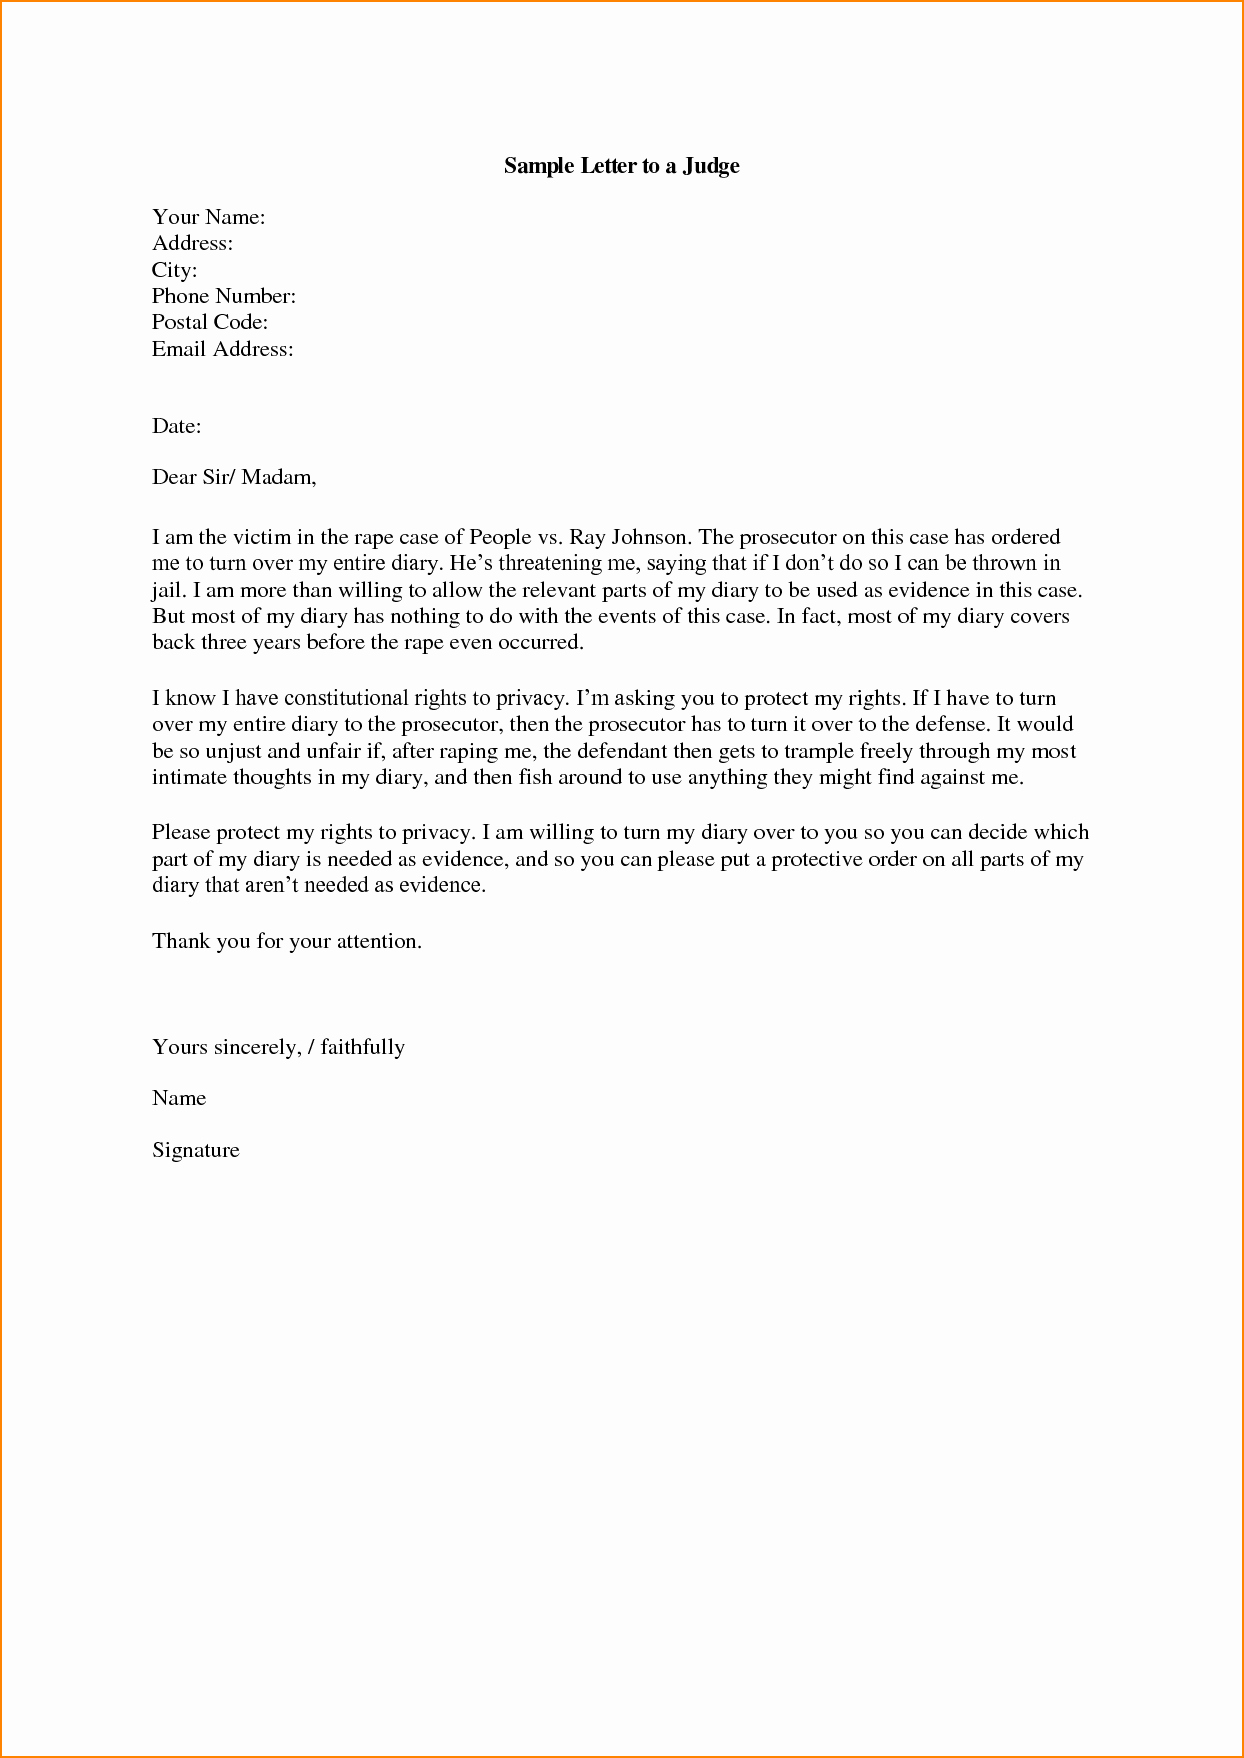 how to address a letter to a judge 2